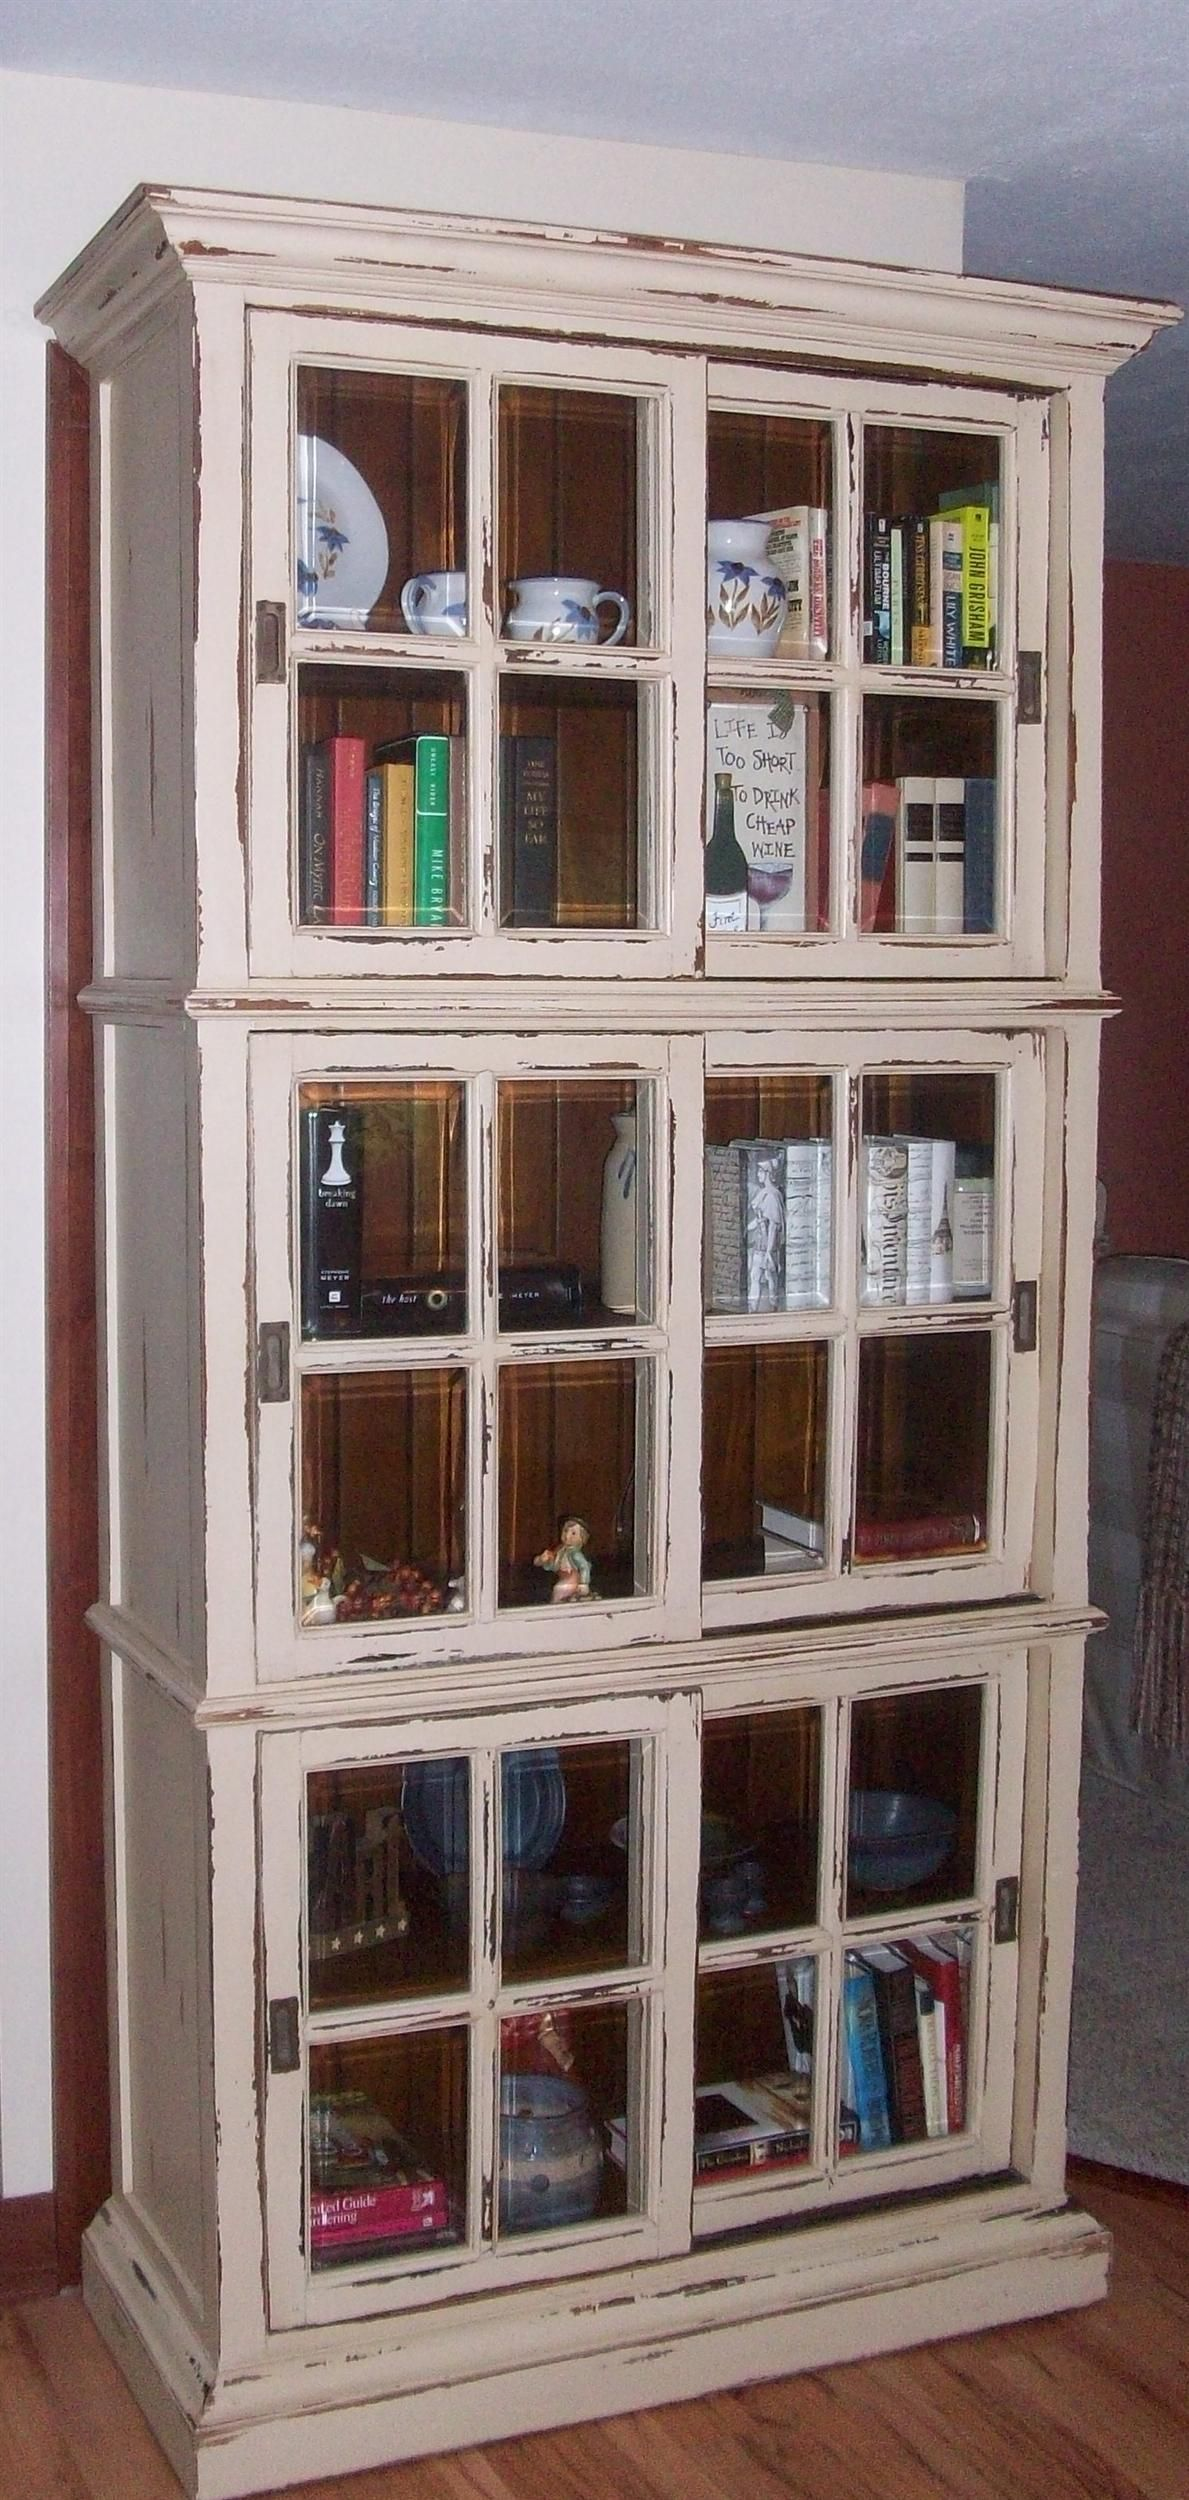 french doors for home office. English Bookcase With Glass Doors - Home Offices Should Look Good! French For Office E